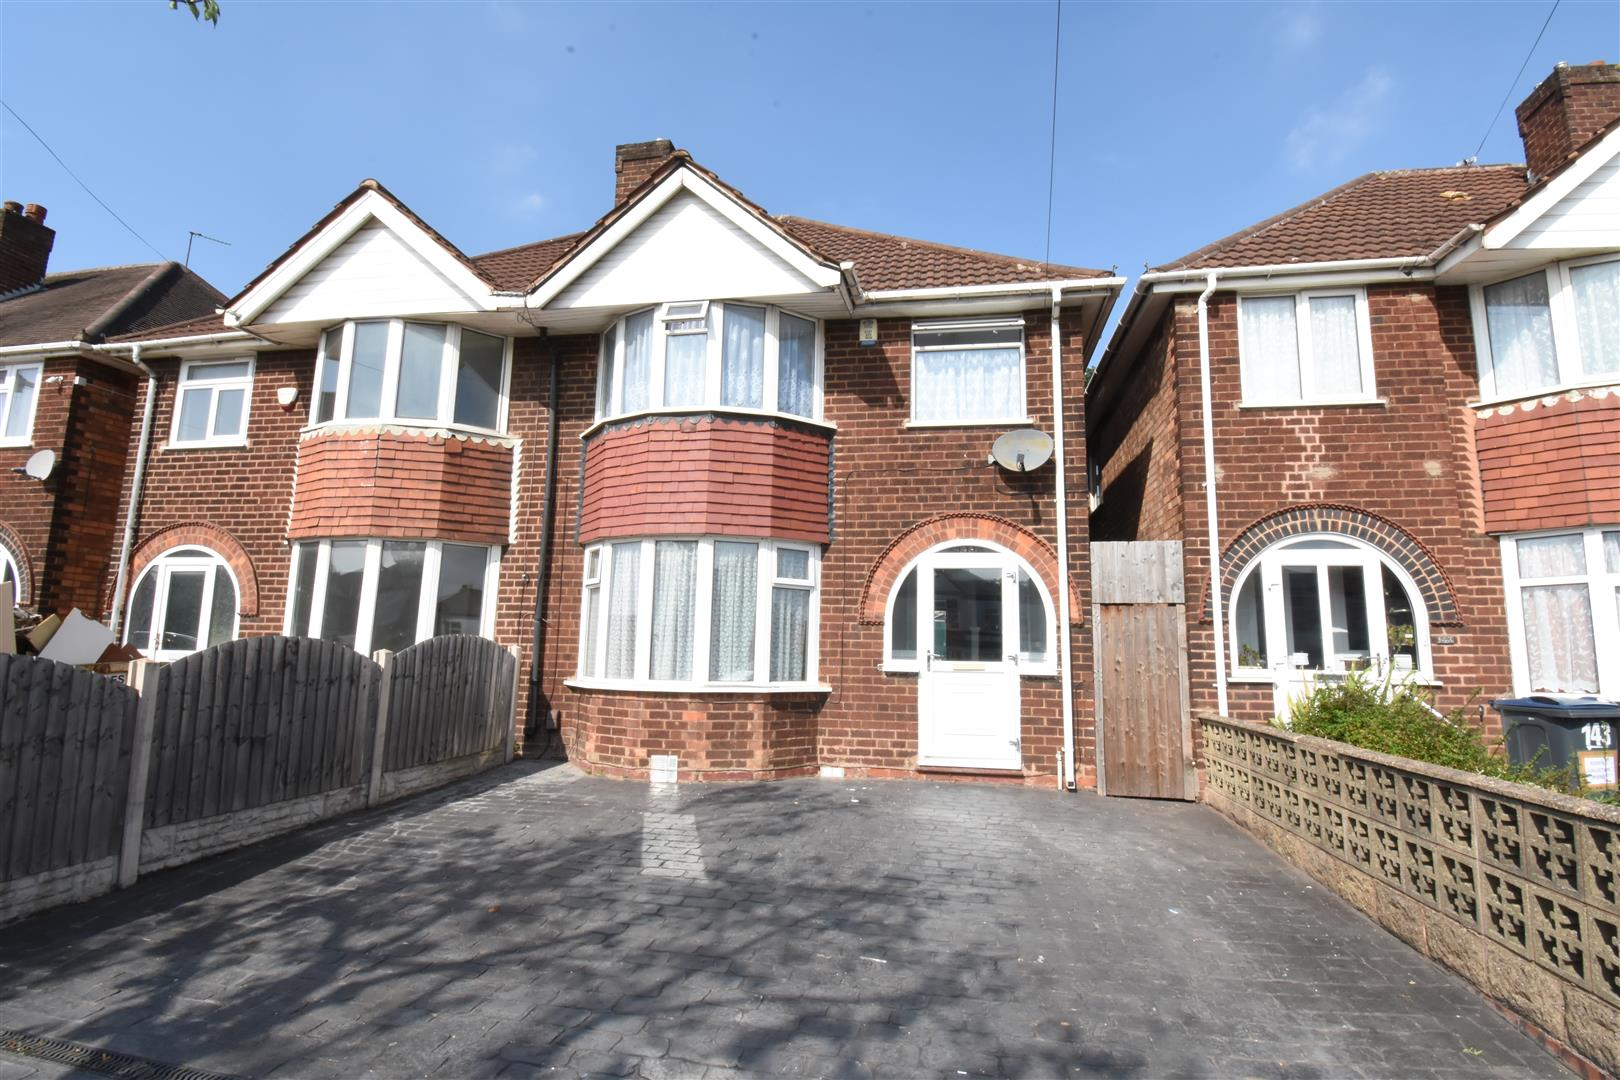 3 bed house for sale in Stechford Road, Hodge Hill, Birmingham, B34